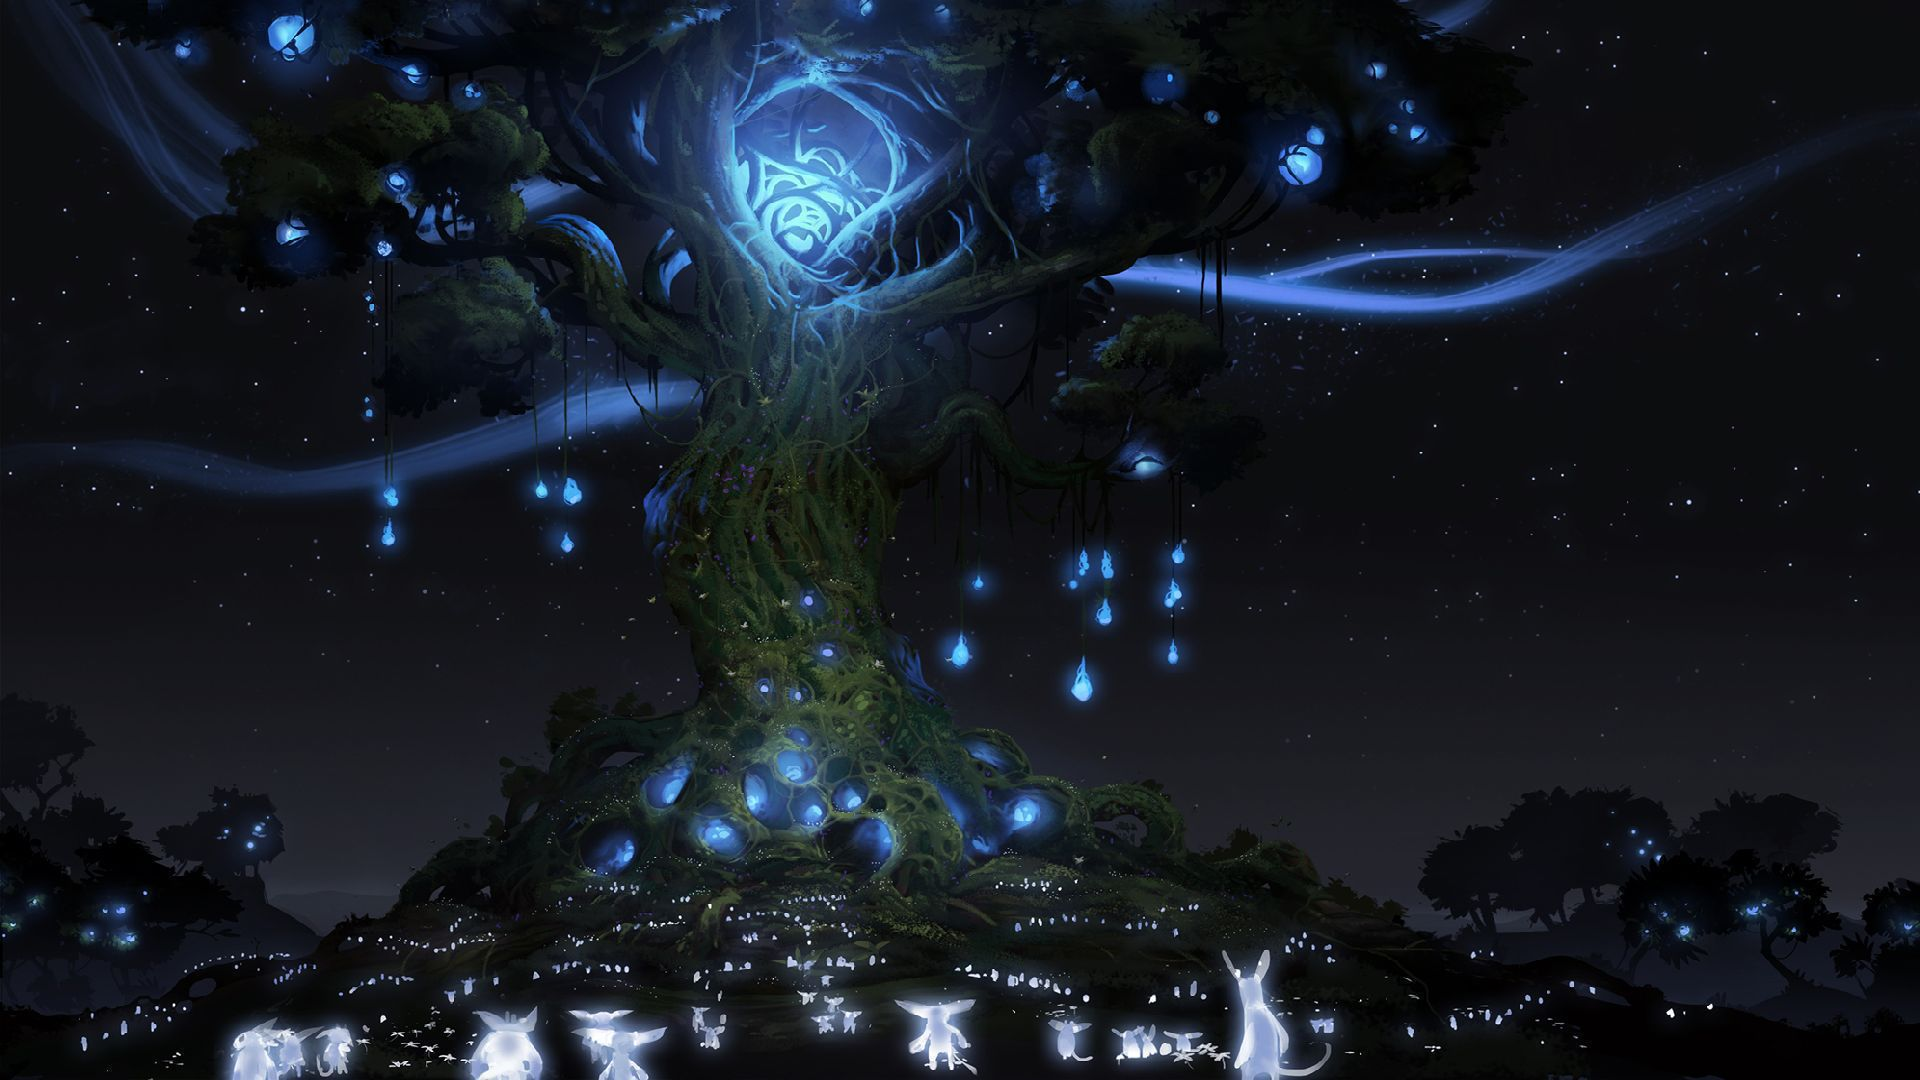 ori and the will of the wisps desktop wallpaper 67647